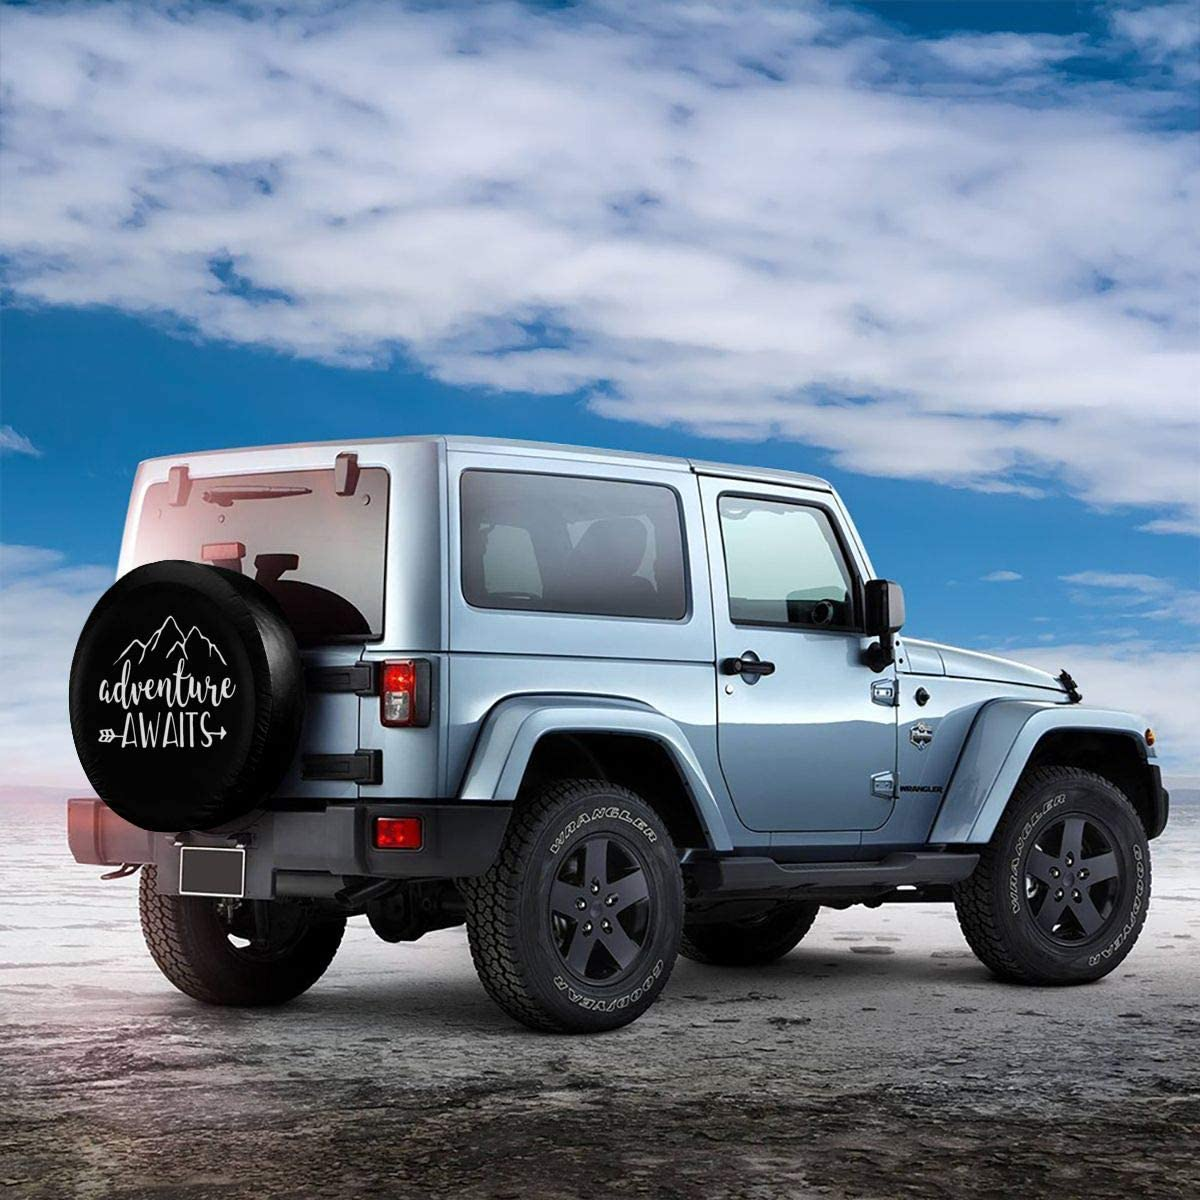 Rv SUV and Many Vehicle 14 15 16 17 MSGUIDE Spare Tire Covers Adventure Awaits Waterproof Dust-Proof Sun Protectors Universal Wheel Cover Fit for Jeep,Trailer